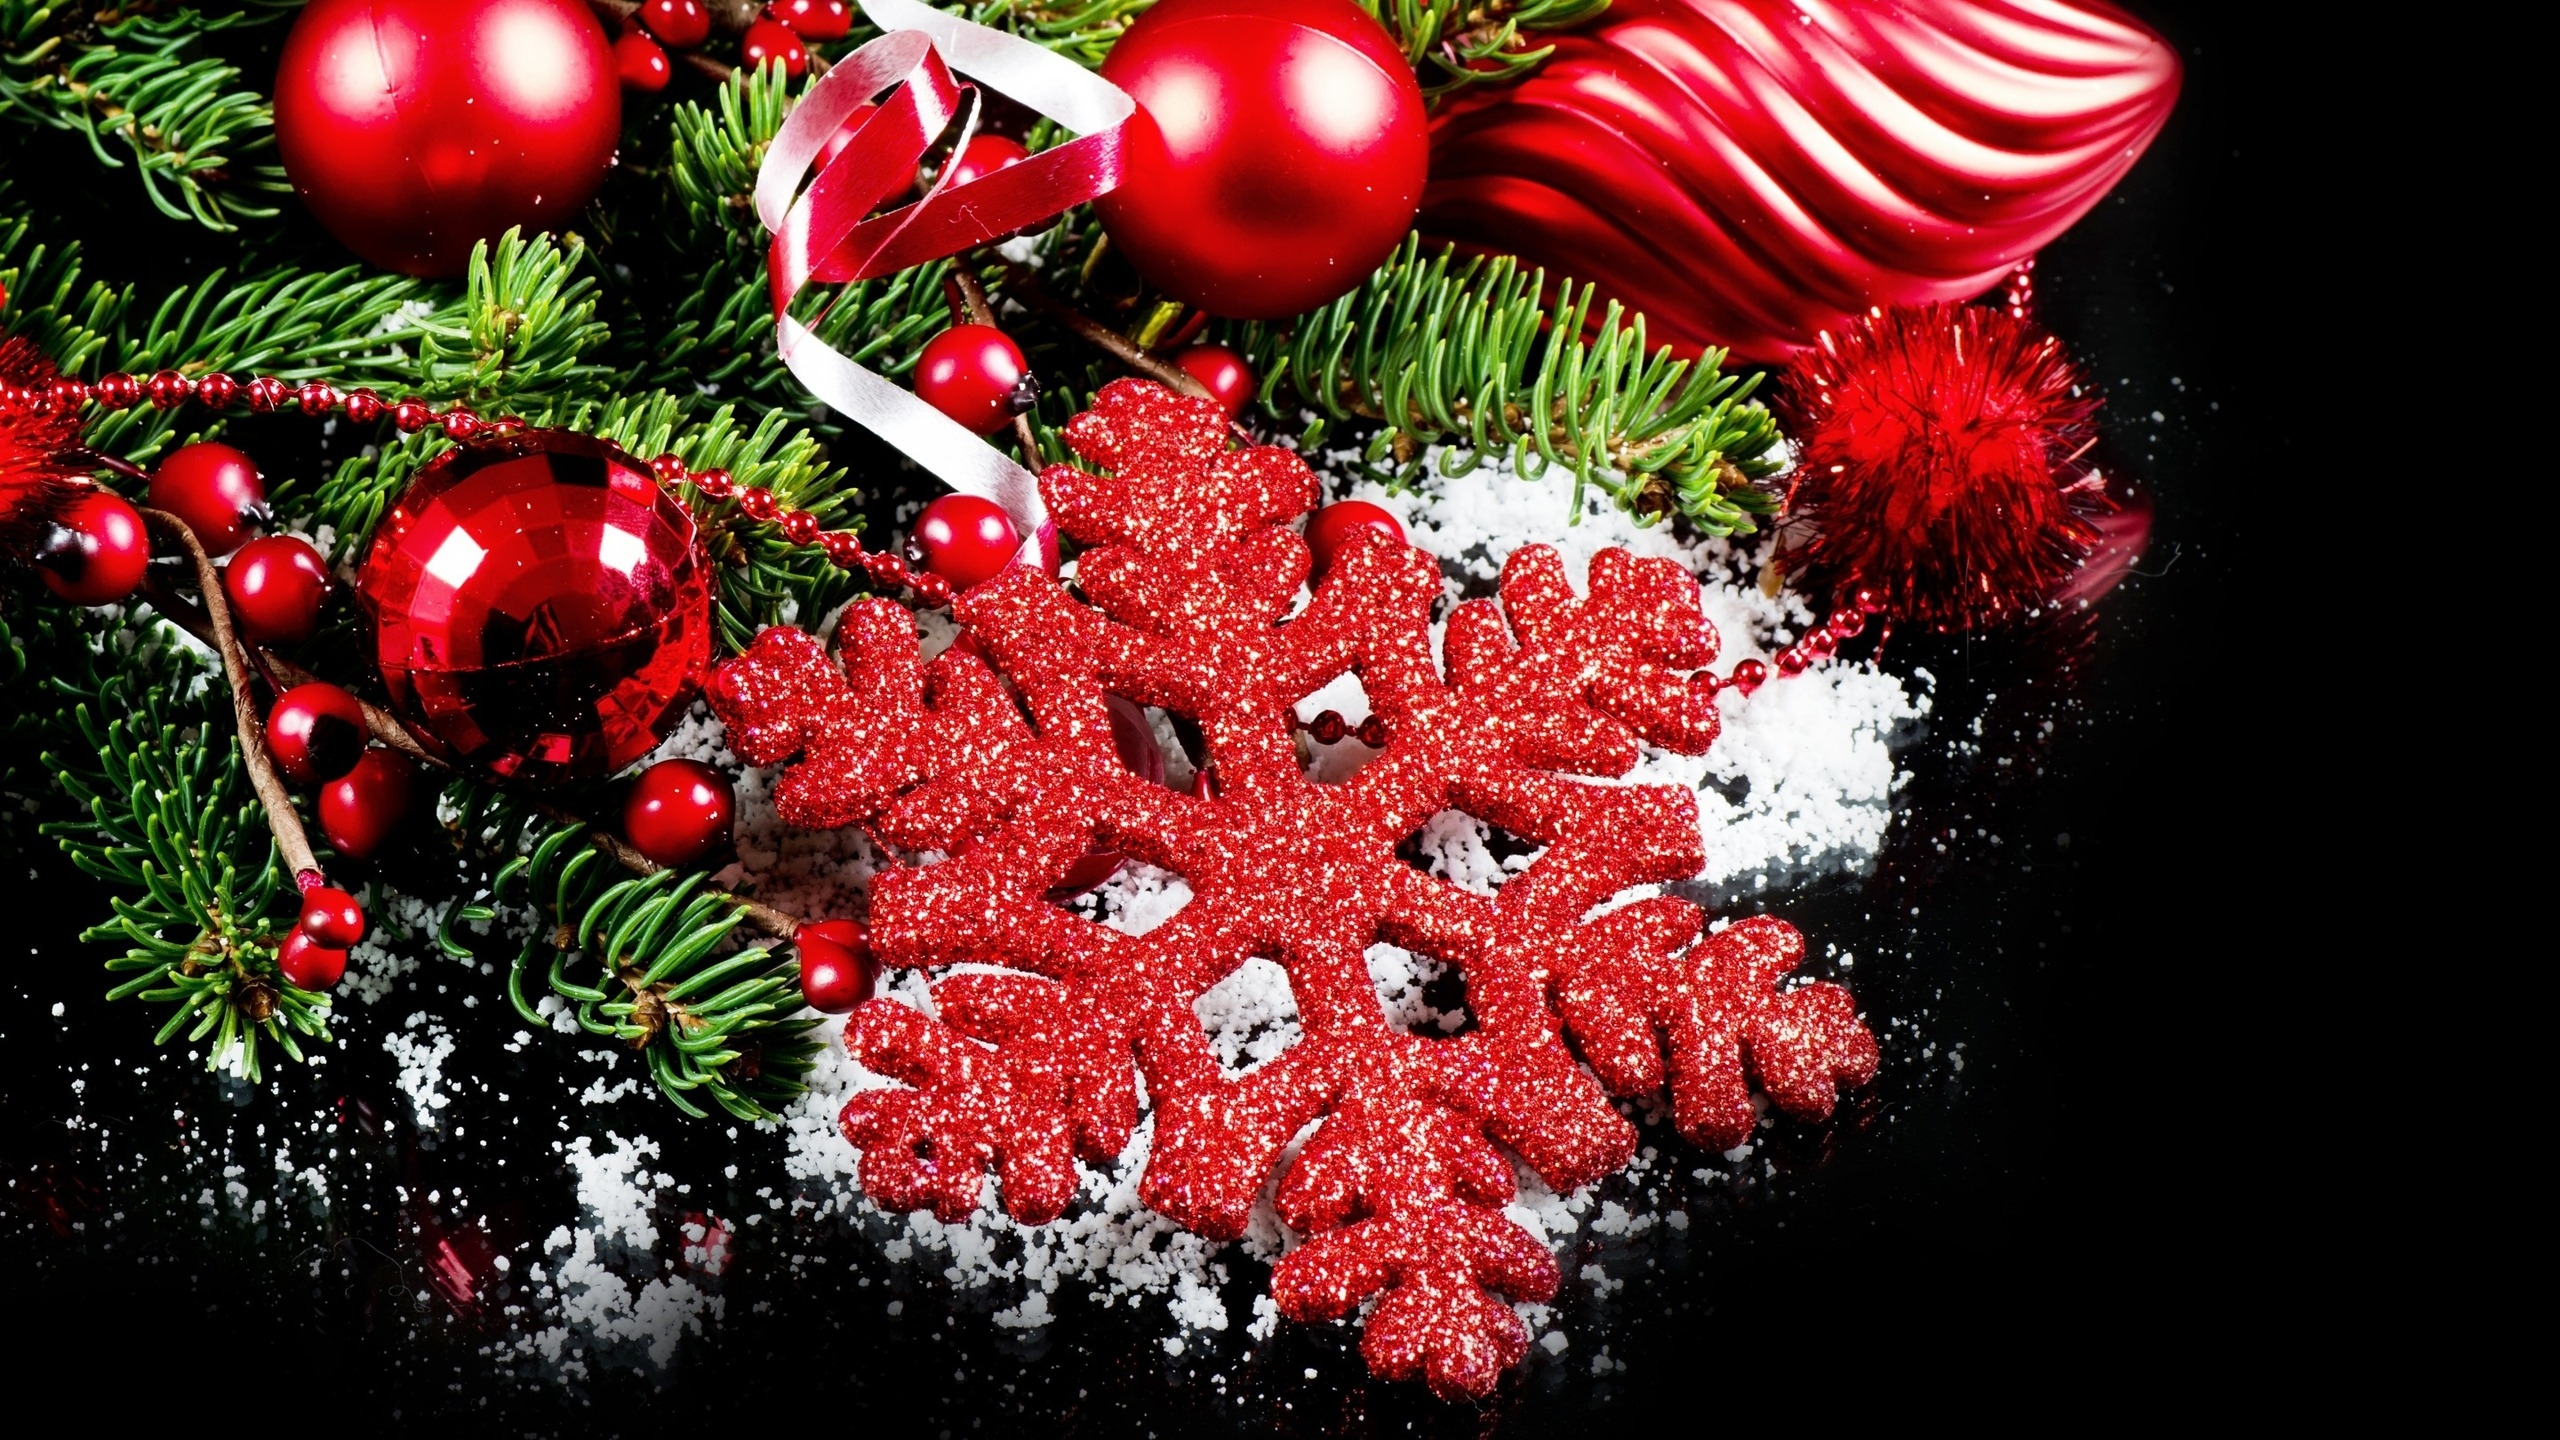 2560x1440 2014 Christmas Ornaments YouTube Channel Cover